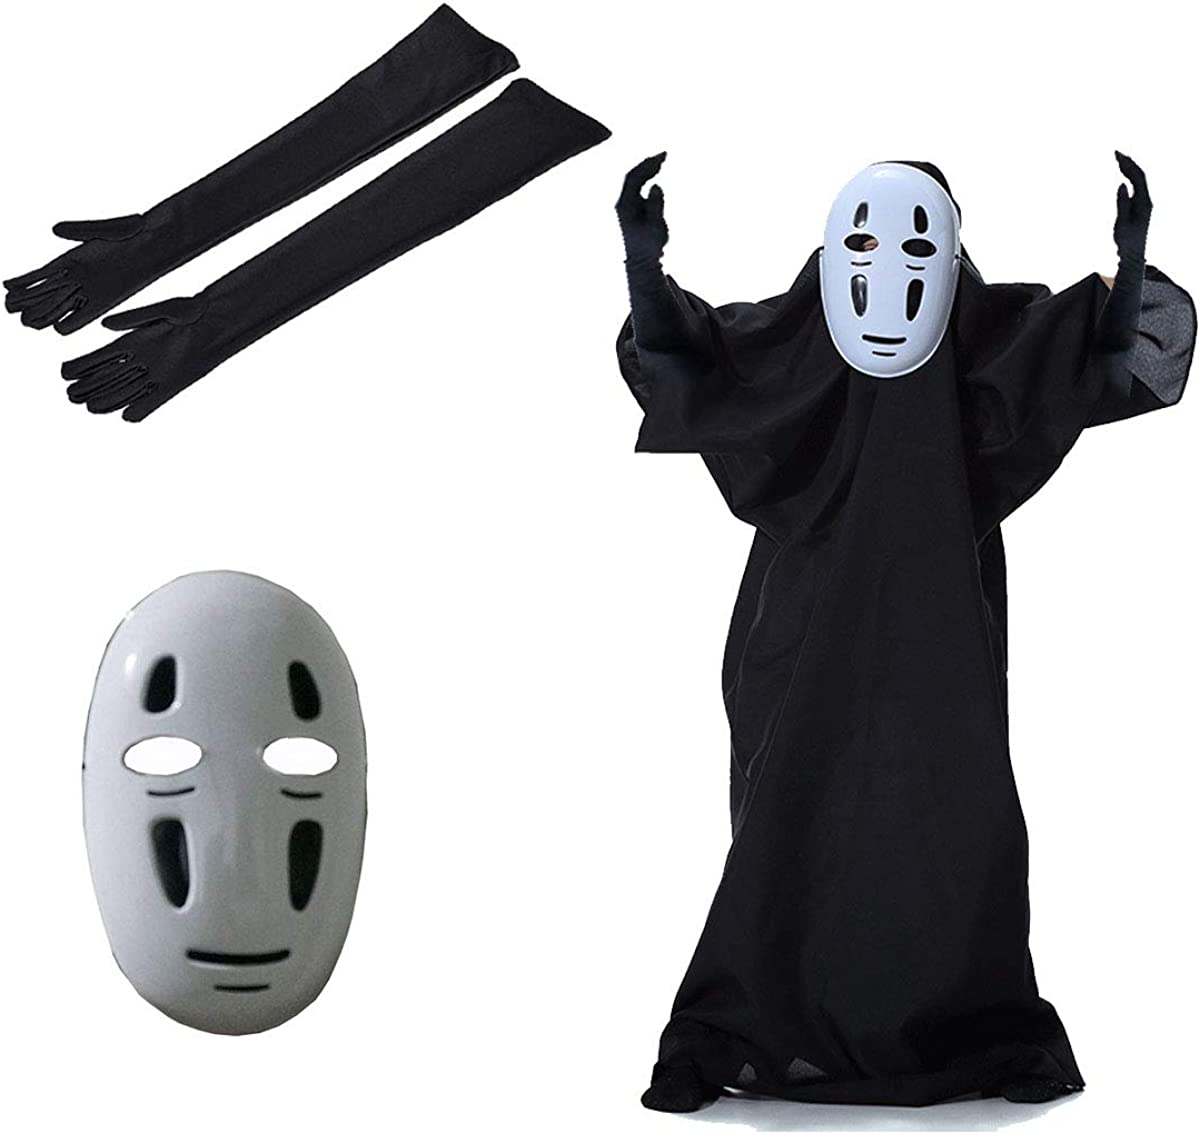 Idoxe Halloween Mask Spirited Away No Face Faceless Ghibli Mask Cosplay Anime Costume White Costume Kids 100 Amazon Ca Clothing Accessories